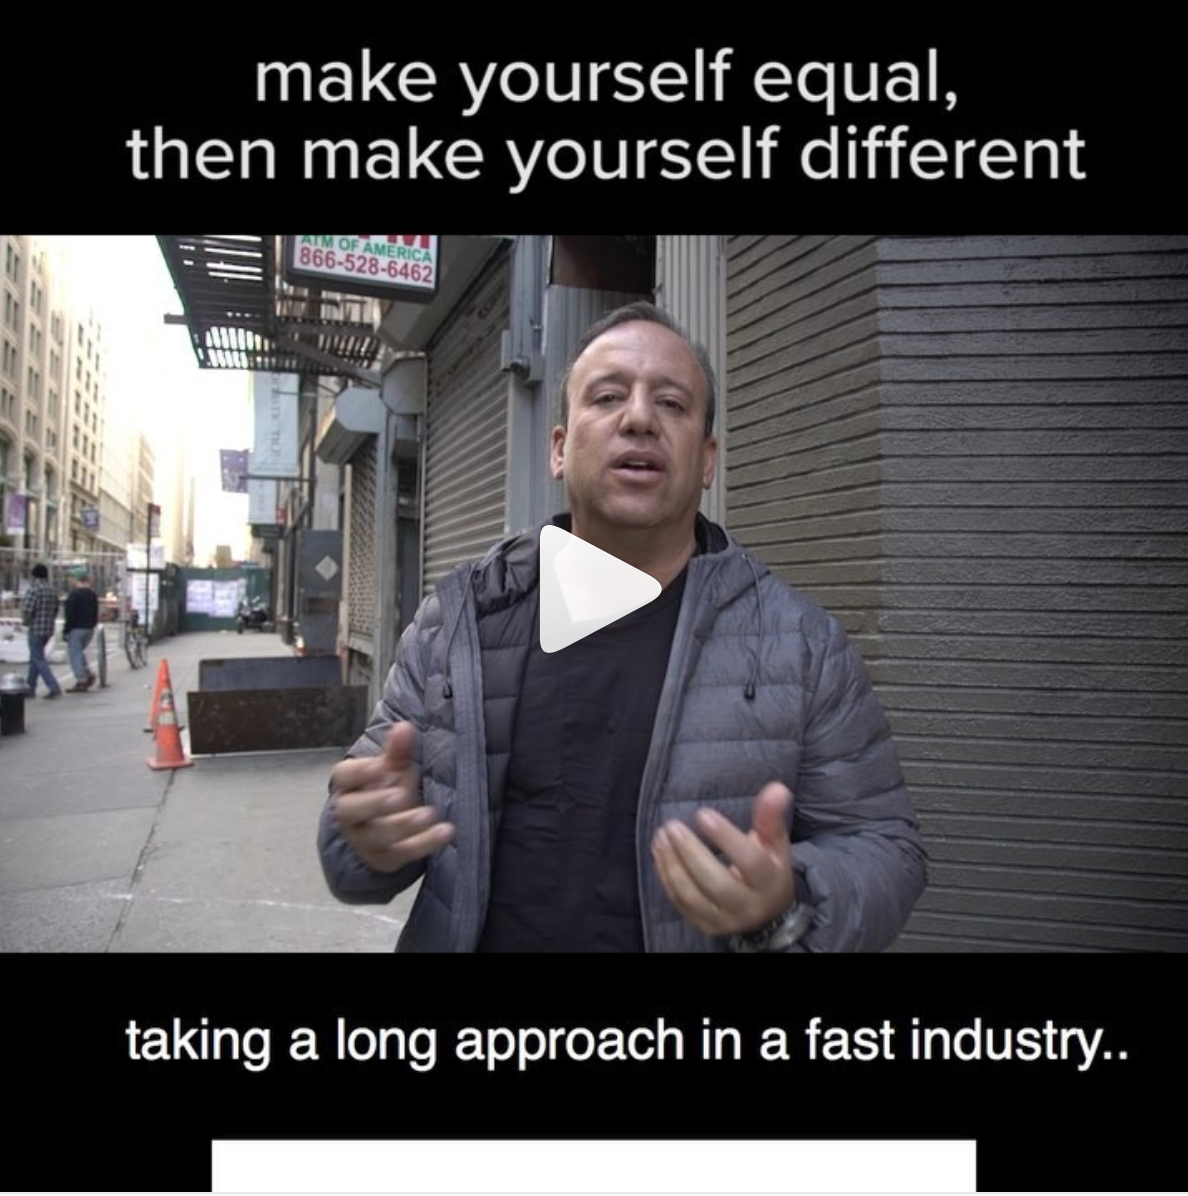 How to Stand Out: Make Yourself Equal and Then Make Yourself Different